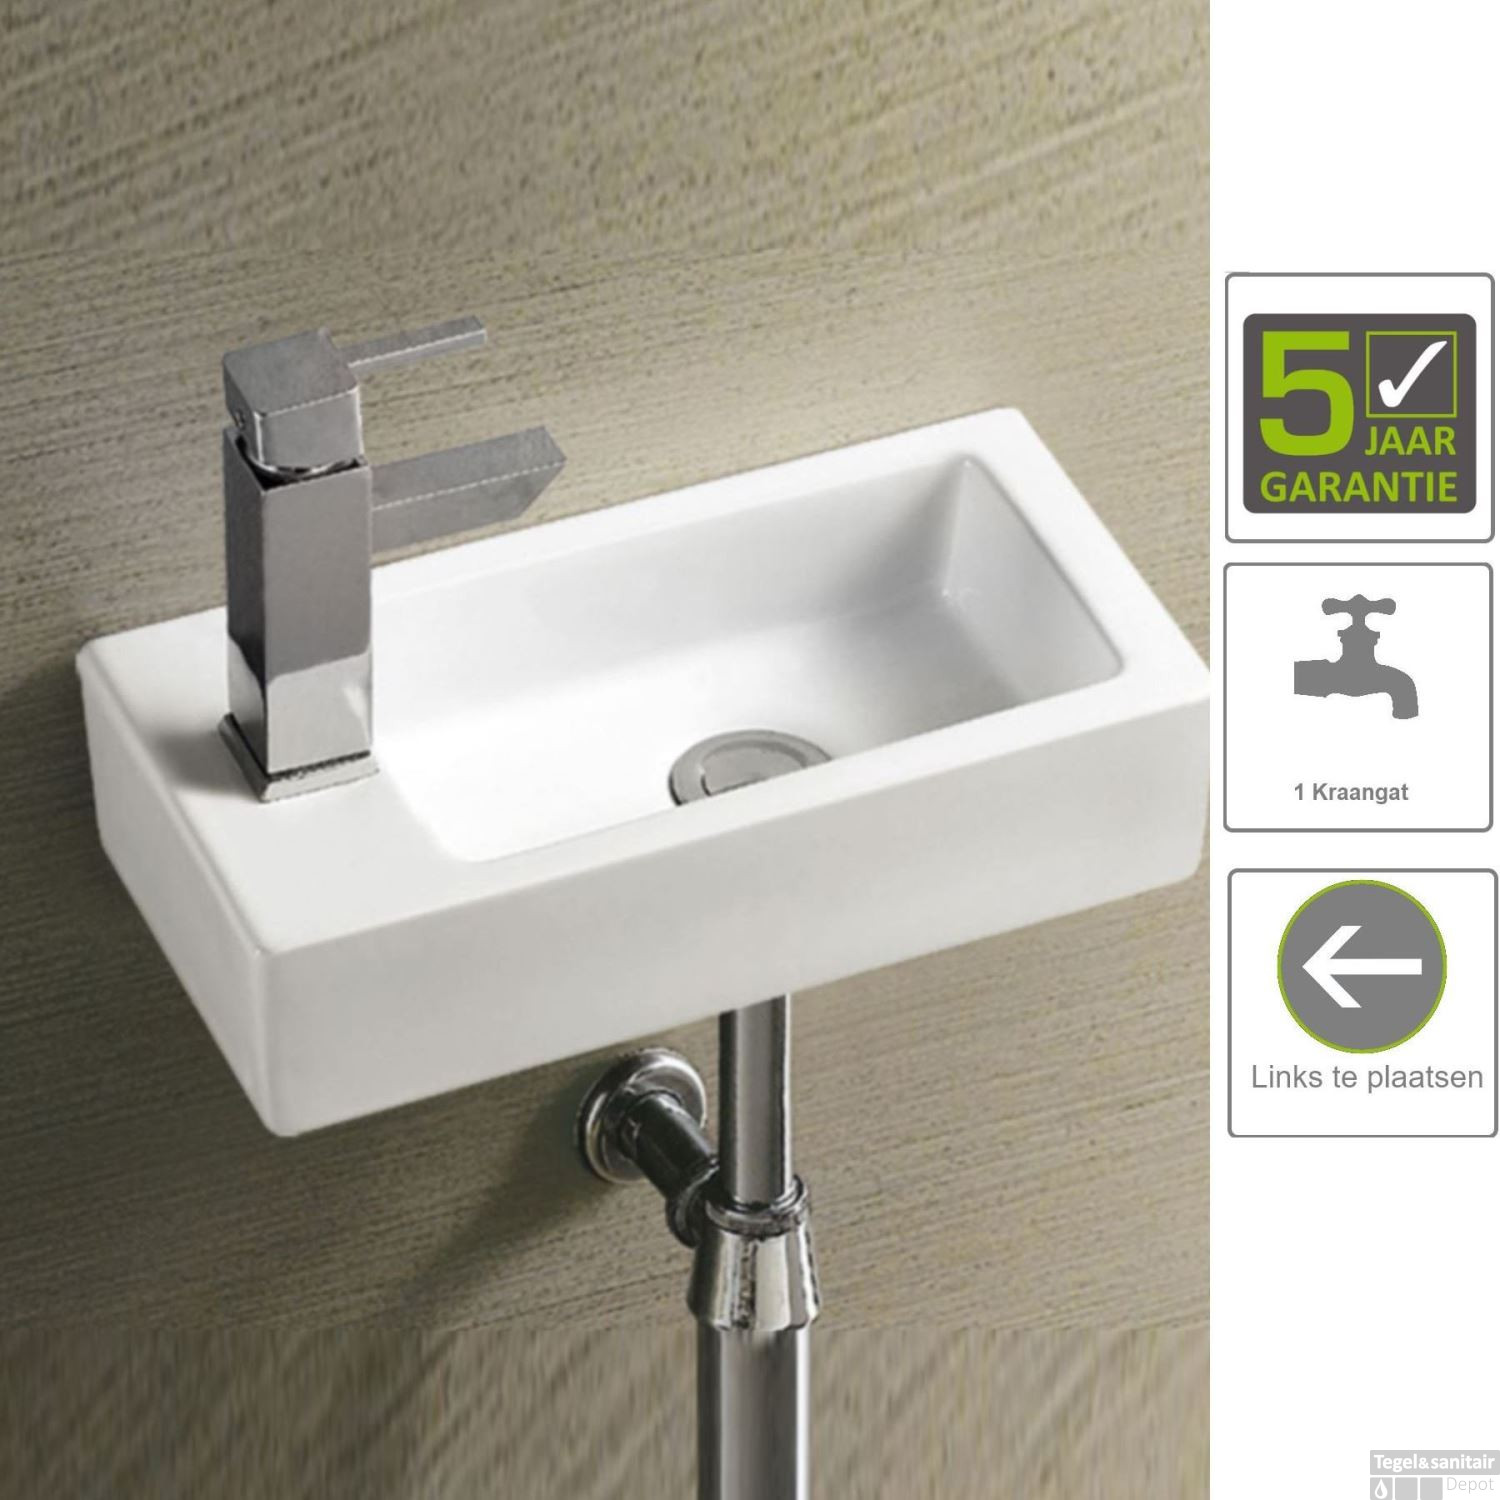 Mini Fontein Toilet.Bws Mini Fontein Keramisch Blong Links 36x18x9 Cm Wit